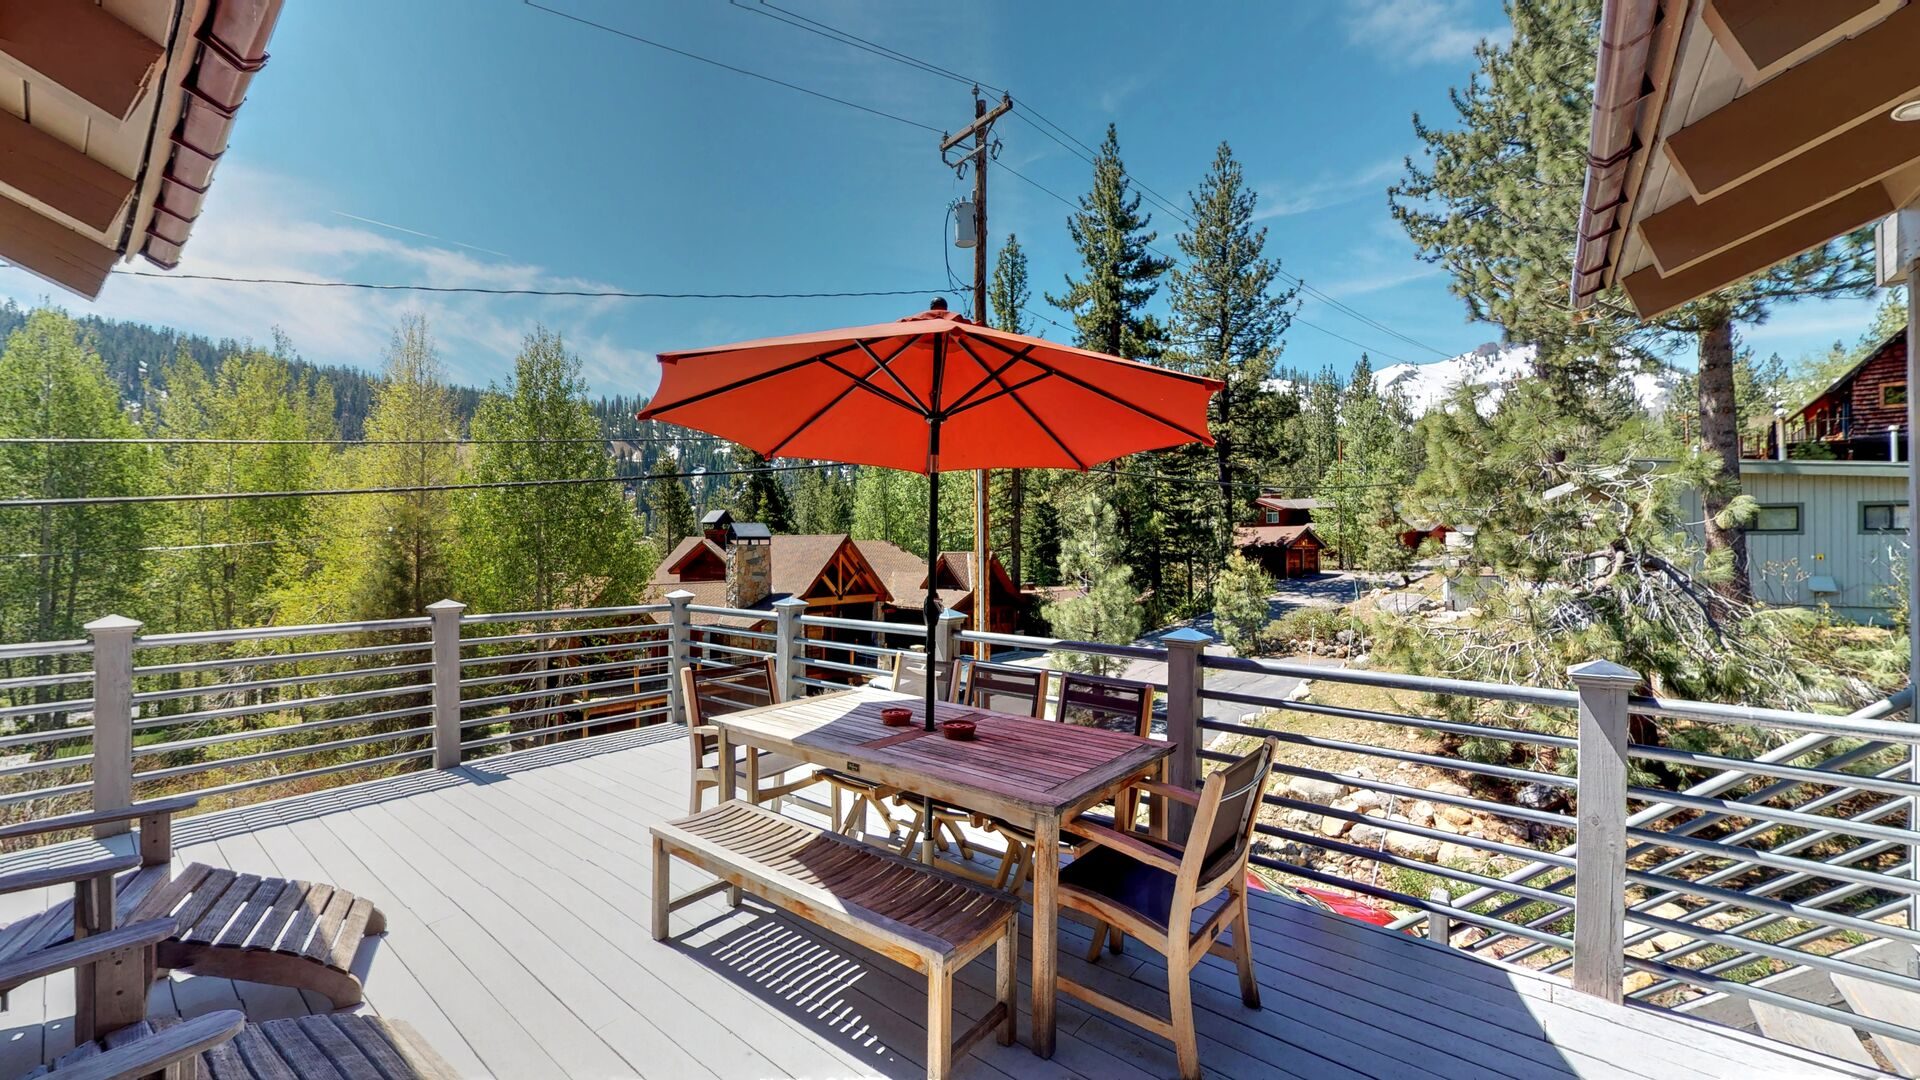 Outdoor seating with umbrella at this squaw valley rental